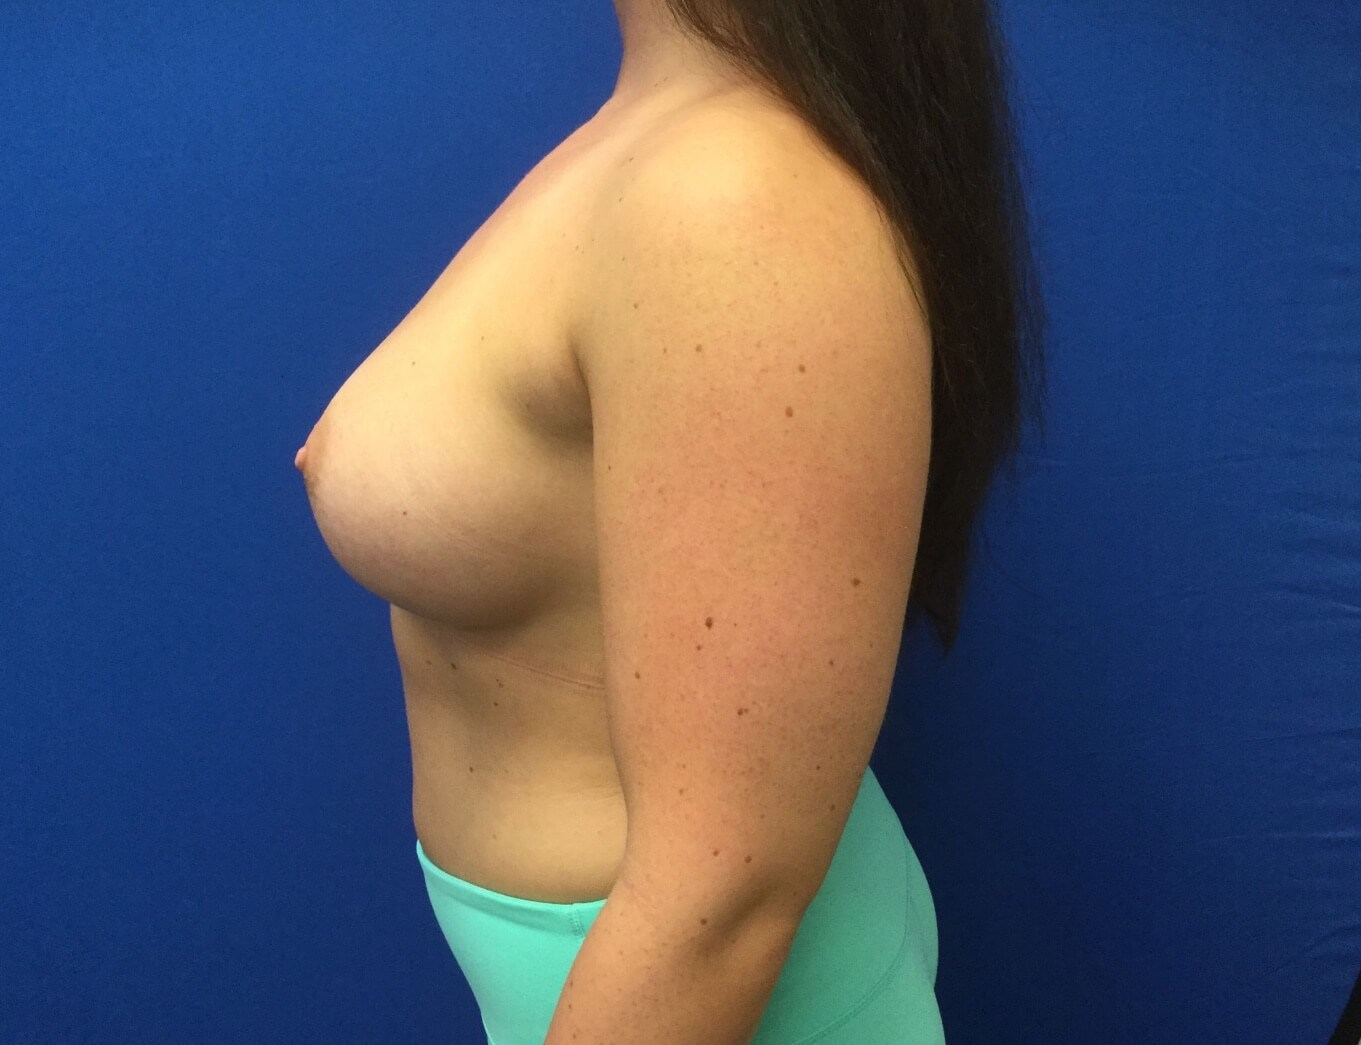 Breast Augmentation After(4 months)